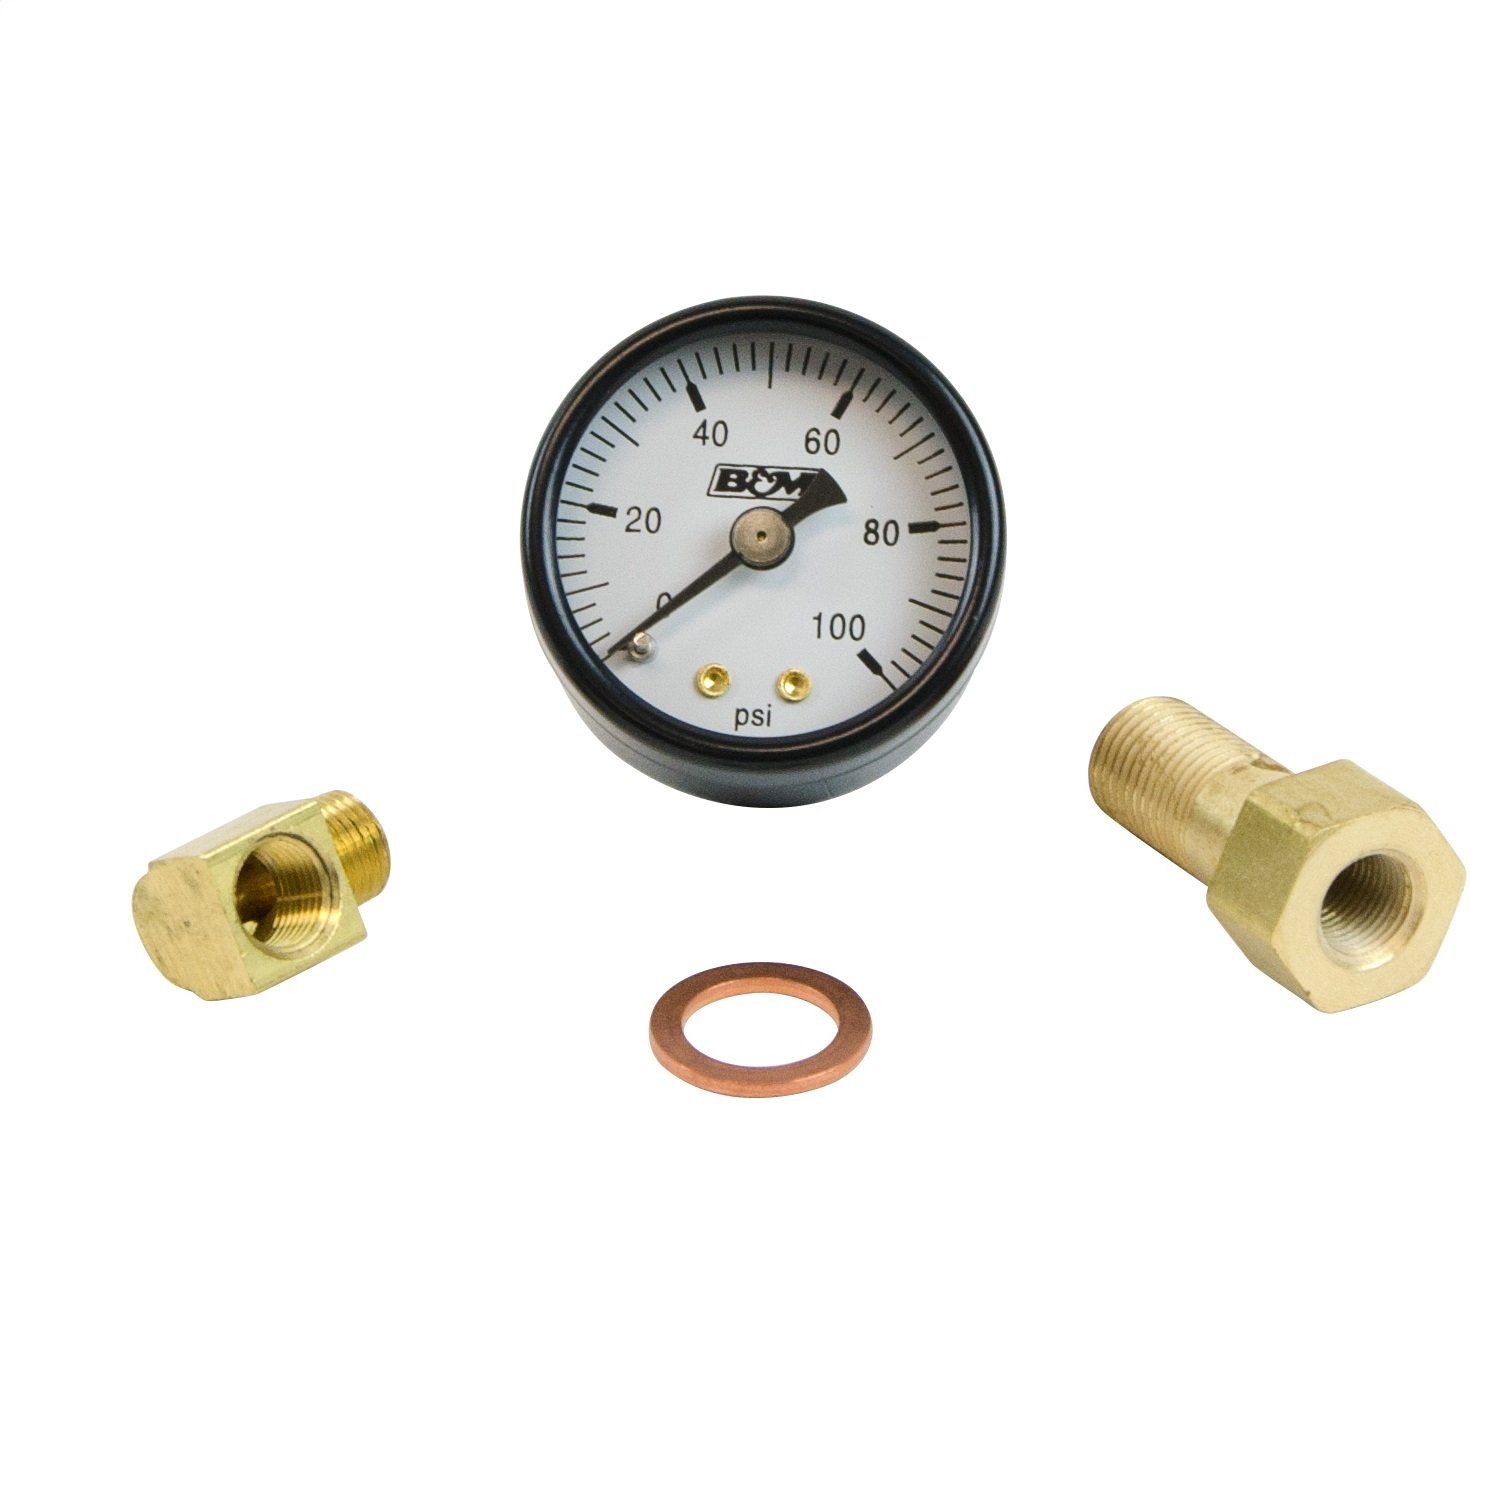 B&M 46054 Fuel Pressure Gauge Set